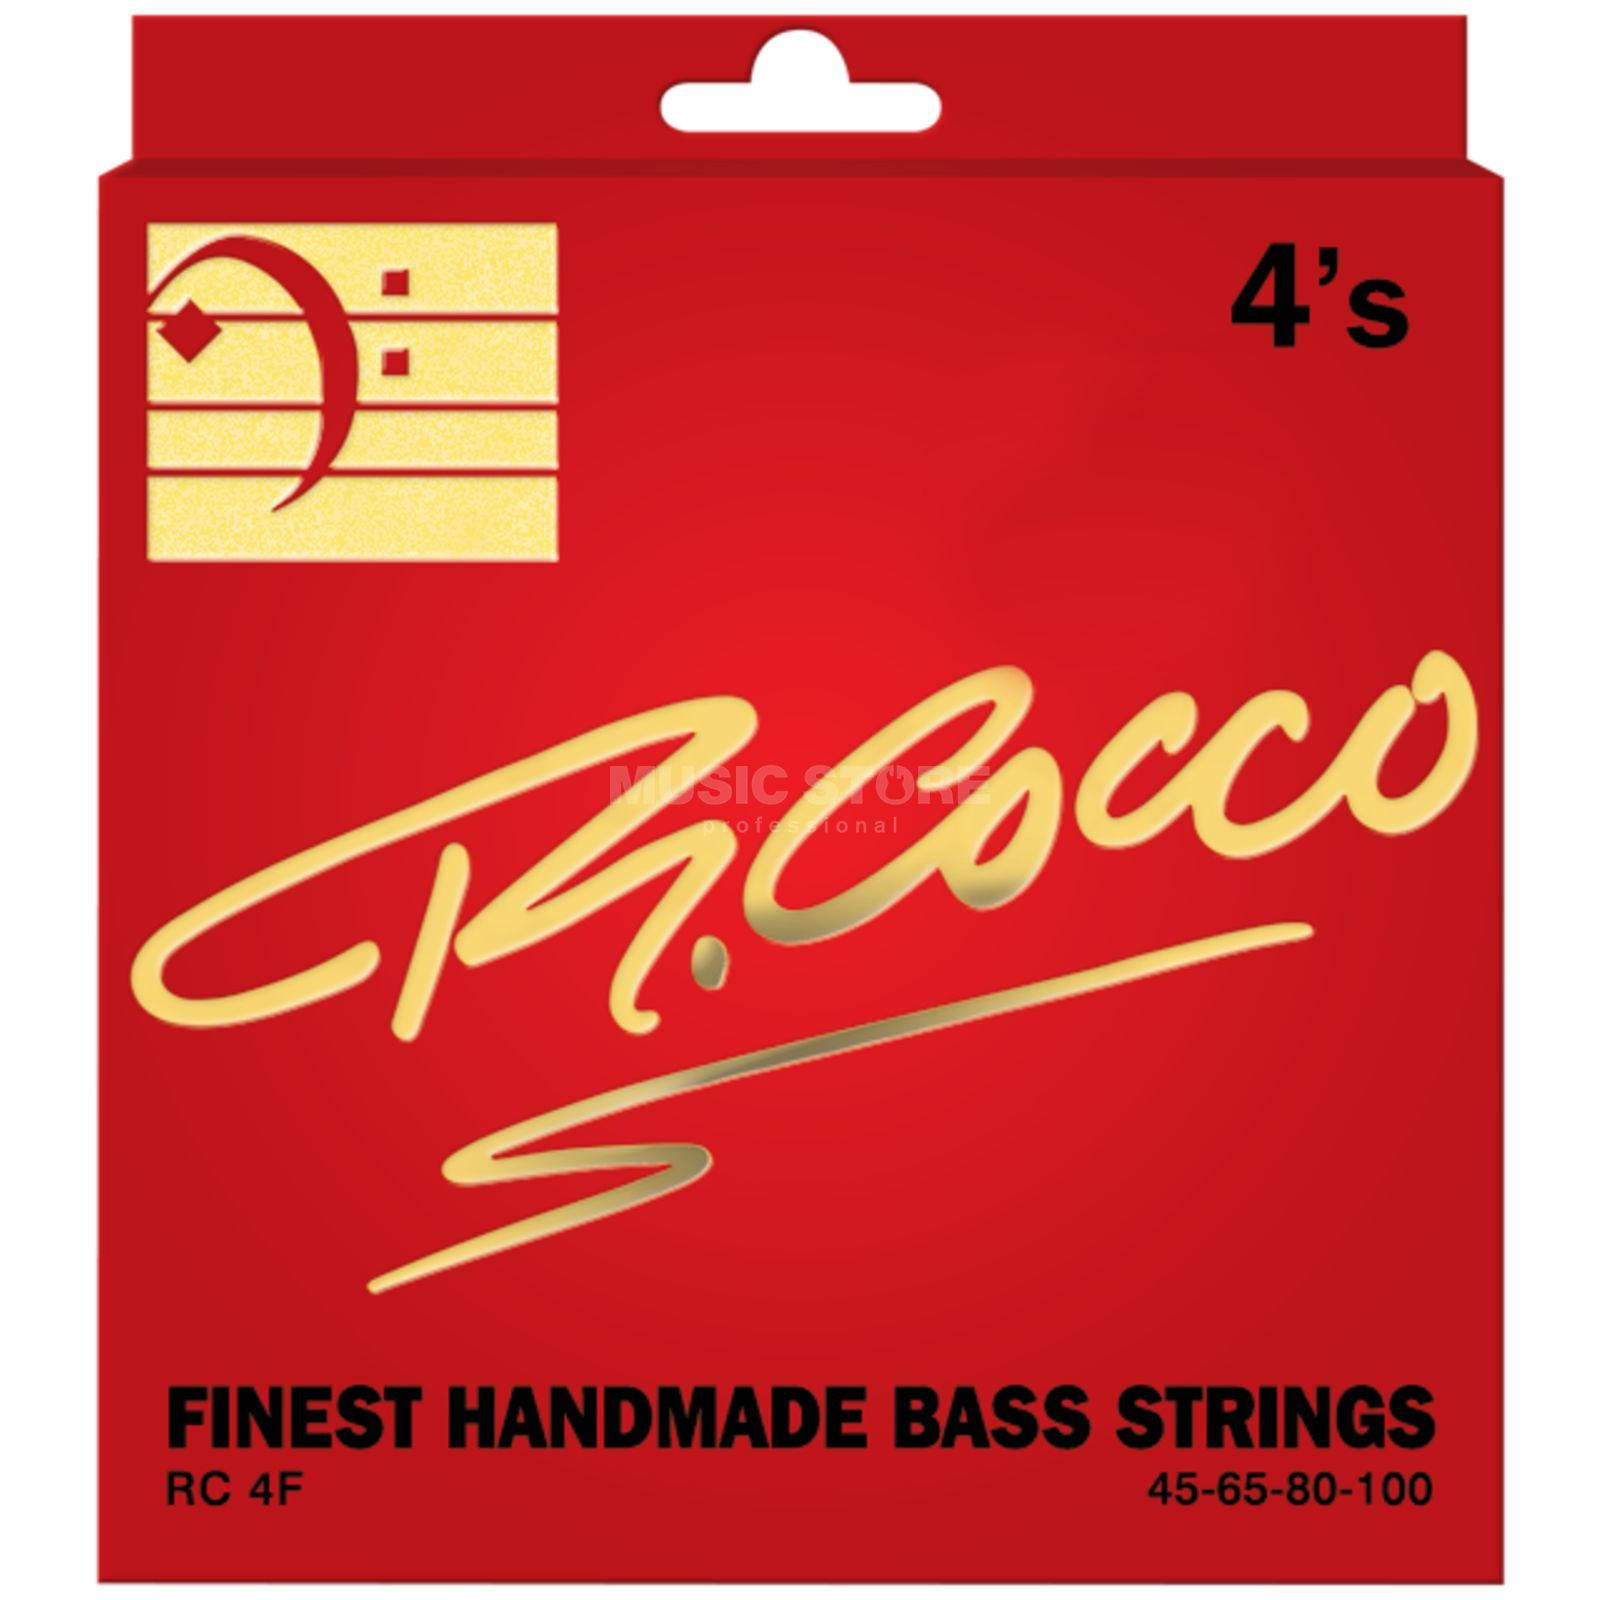 Cocco RC4F Bass Strings 45-100 4 Set, 45-65-80-100  Classic Wound Zdjęcie produktu